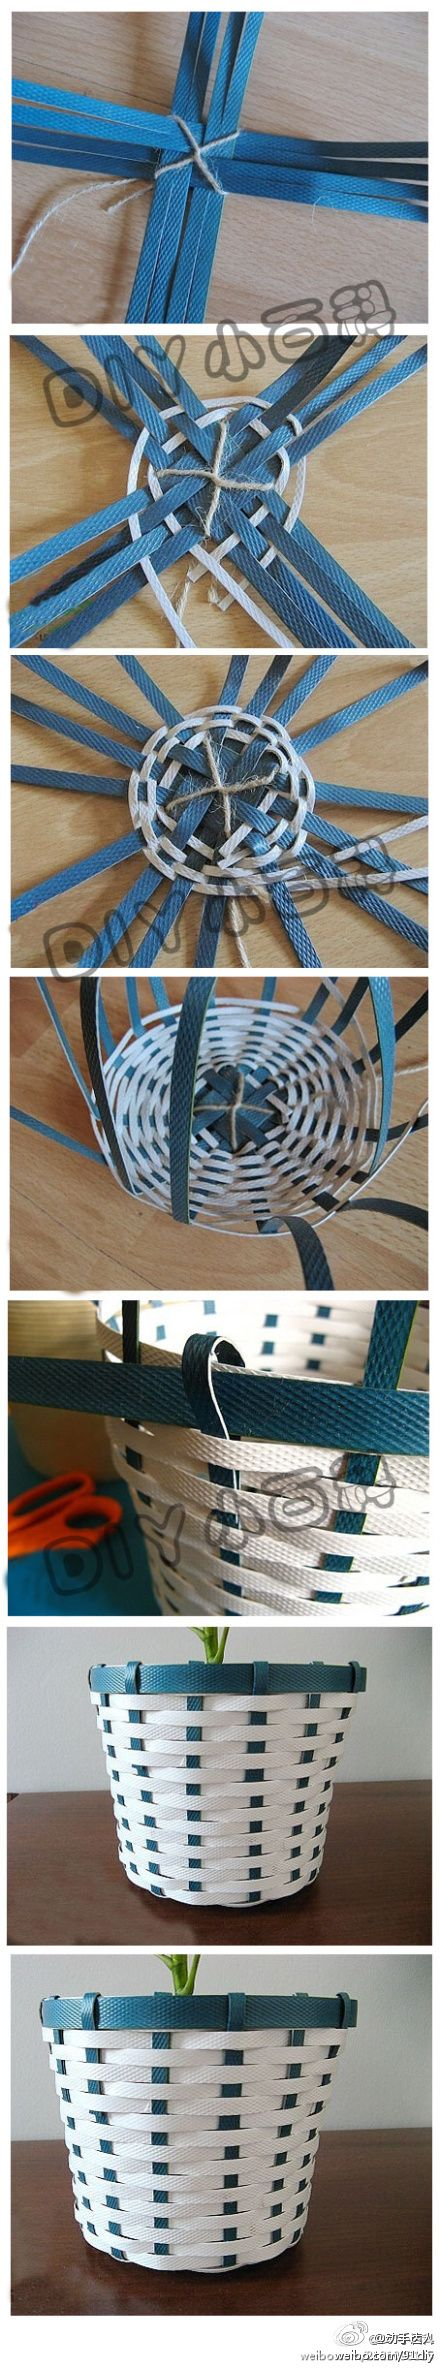 Basket From recycled packing materials.                              …